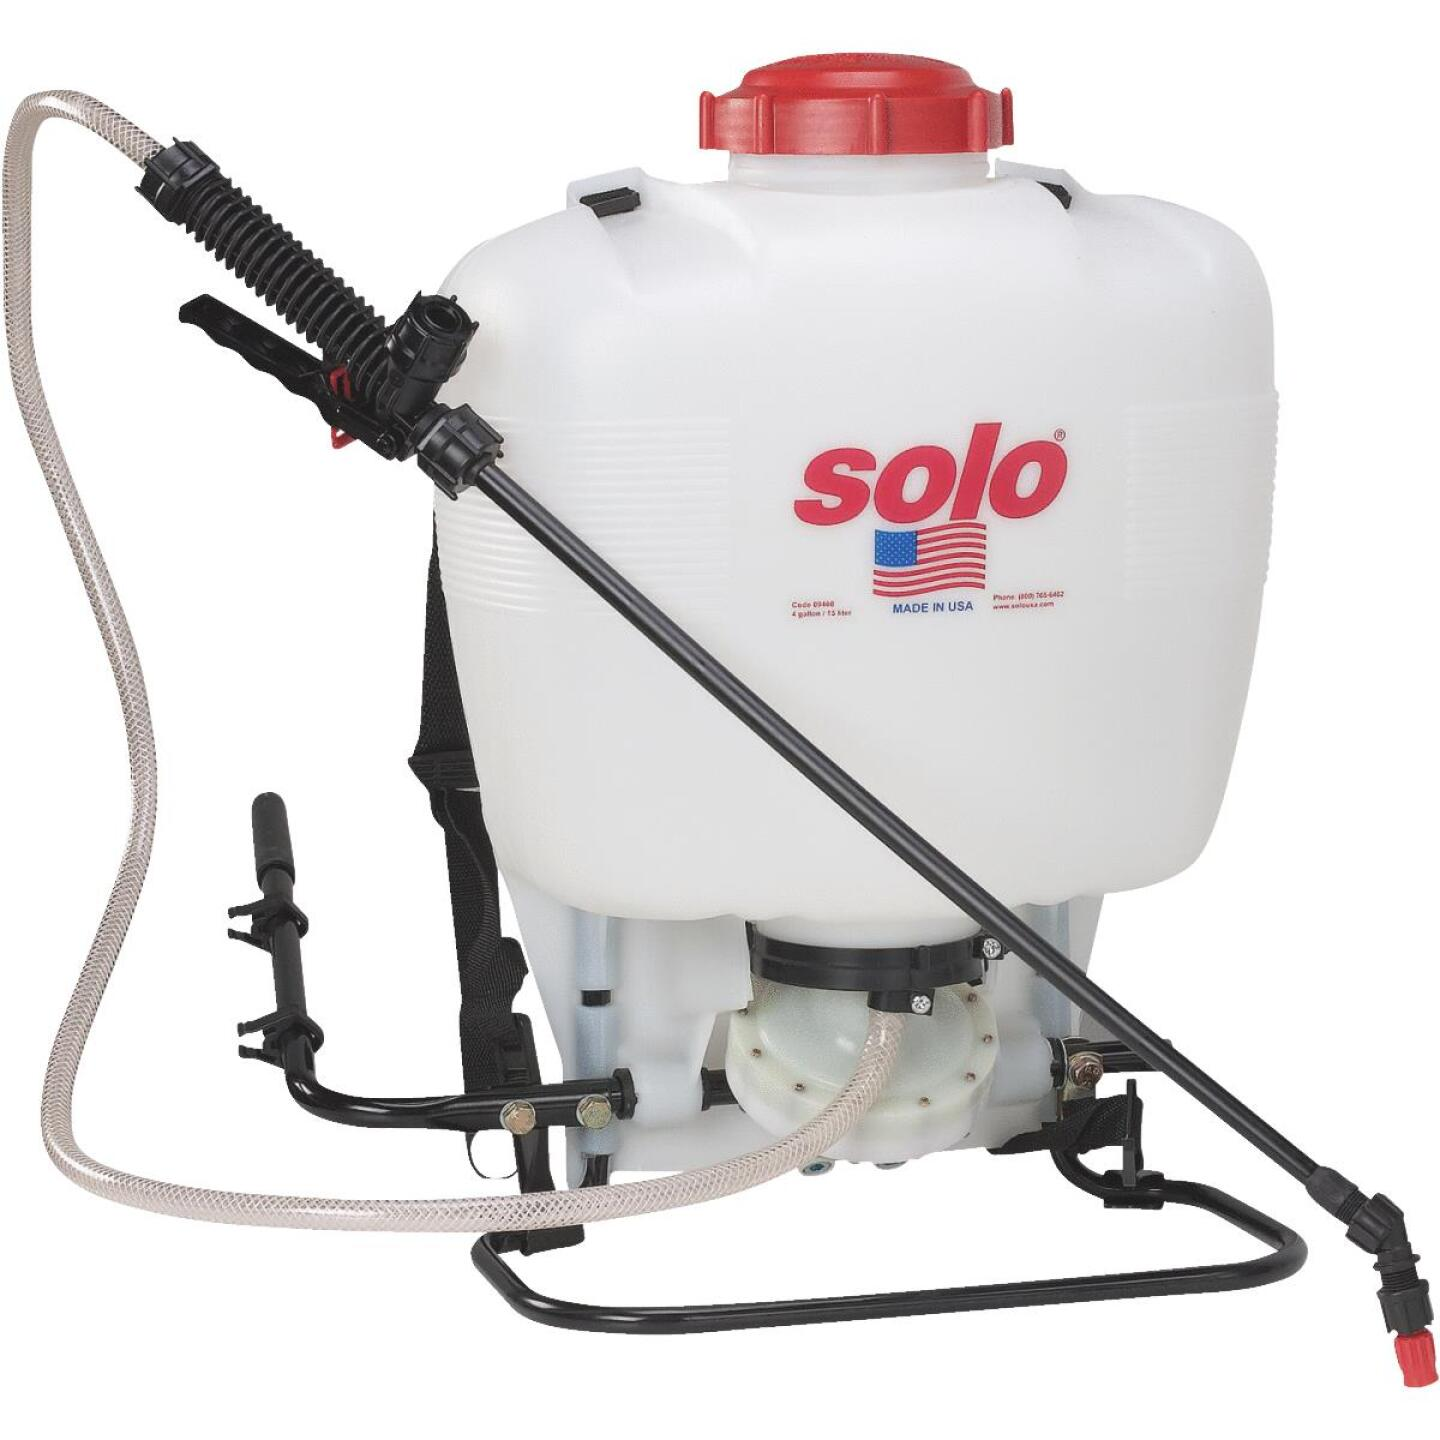 Solo 475 4 Gal. Backpack Sprayer Image 1